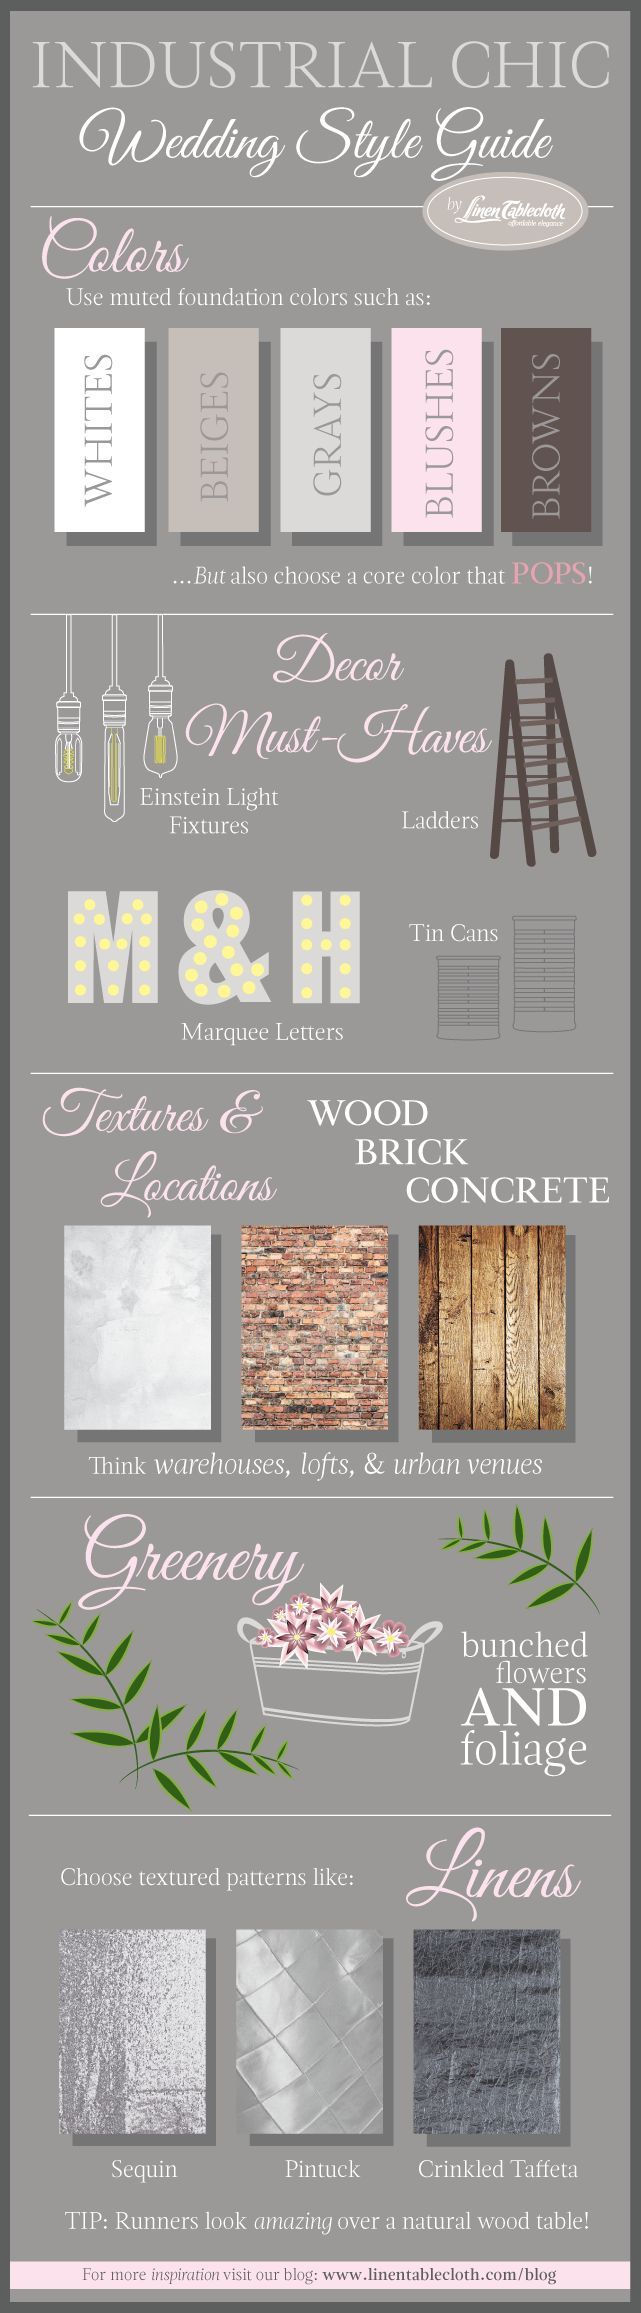 Industrial Chic Wedding Style Guide Infographic - LinenTablecloth ...